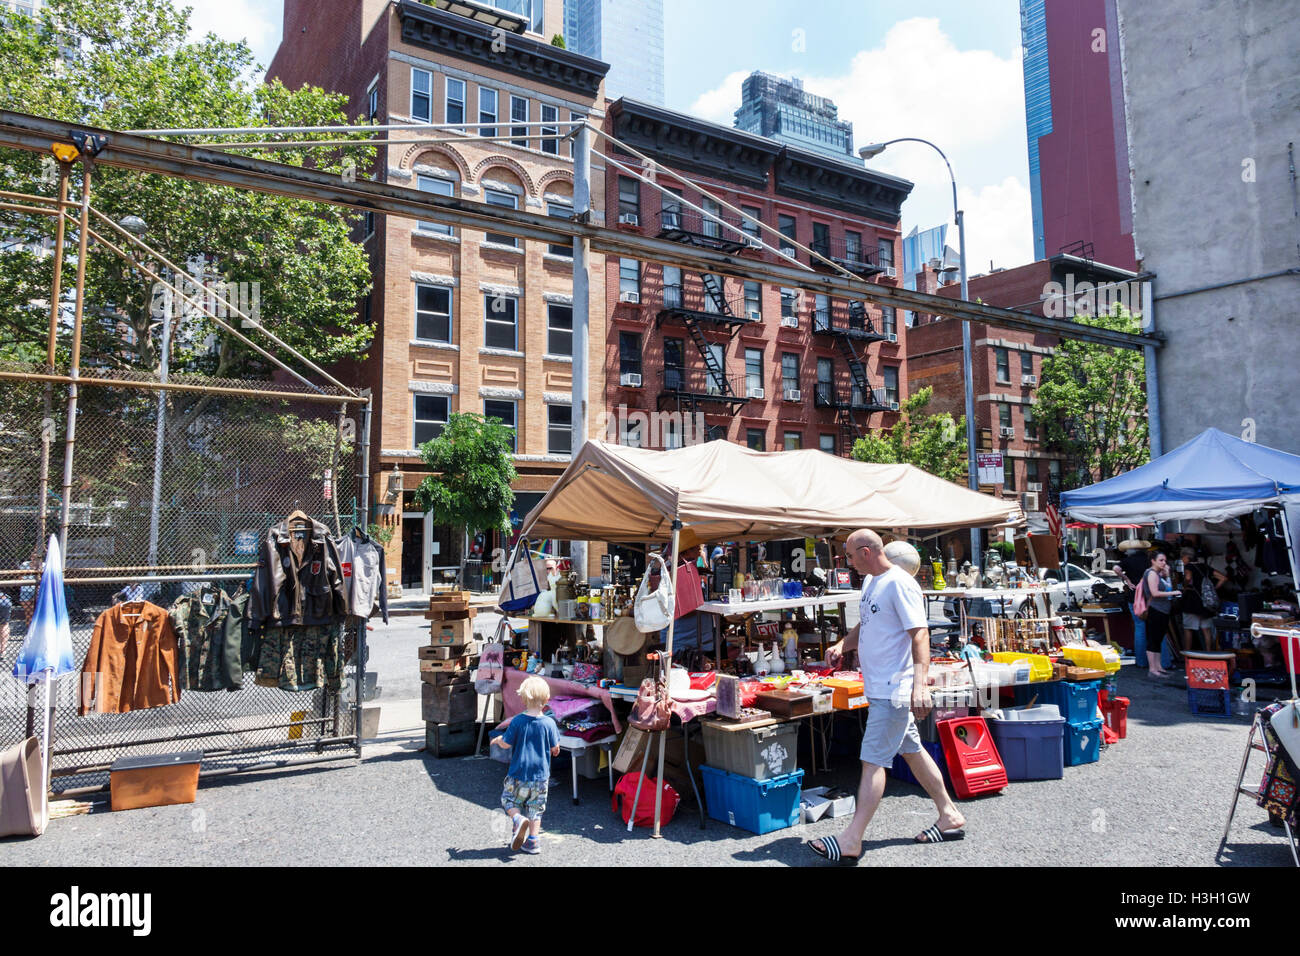 Manhattan New York City NYC NY Hells Kitchen Flea Market Outdoor Shopping Vendors Stalls Sale Selling Vintage Home Decor Man Bo